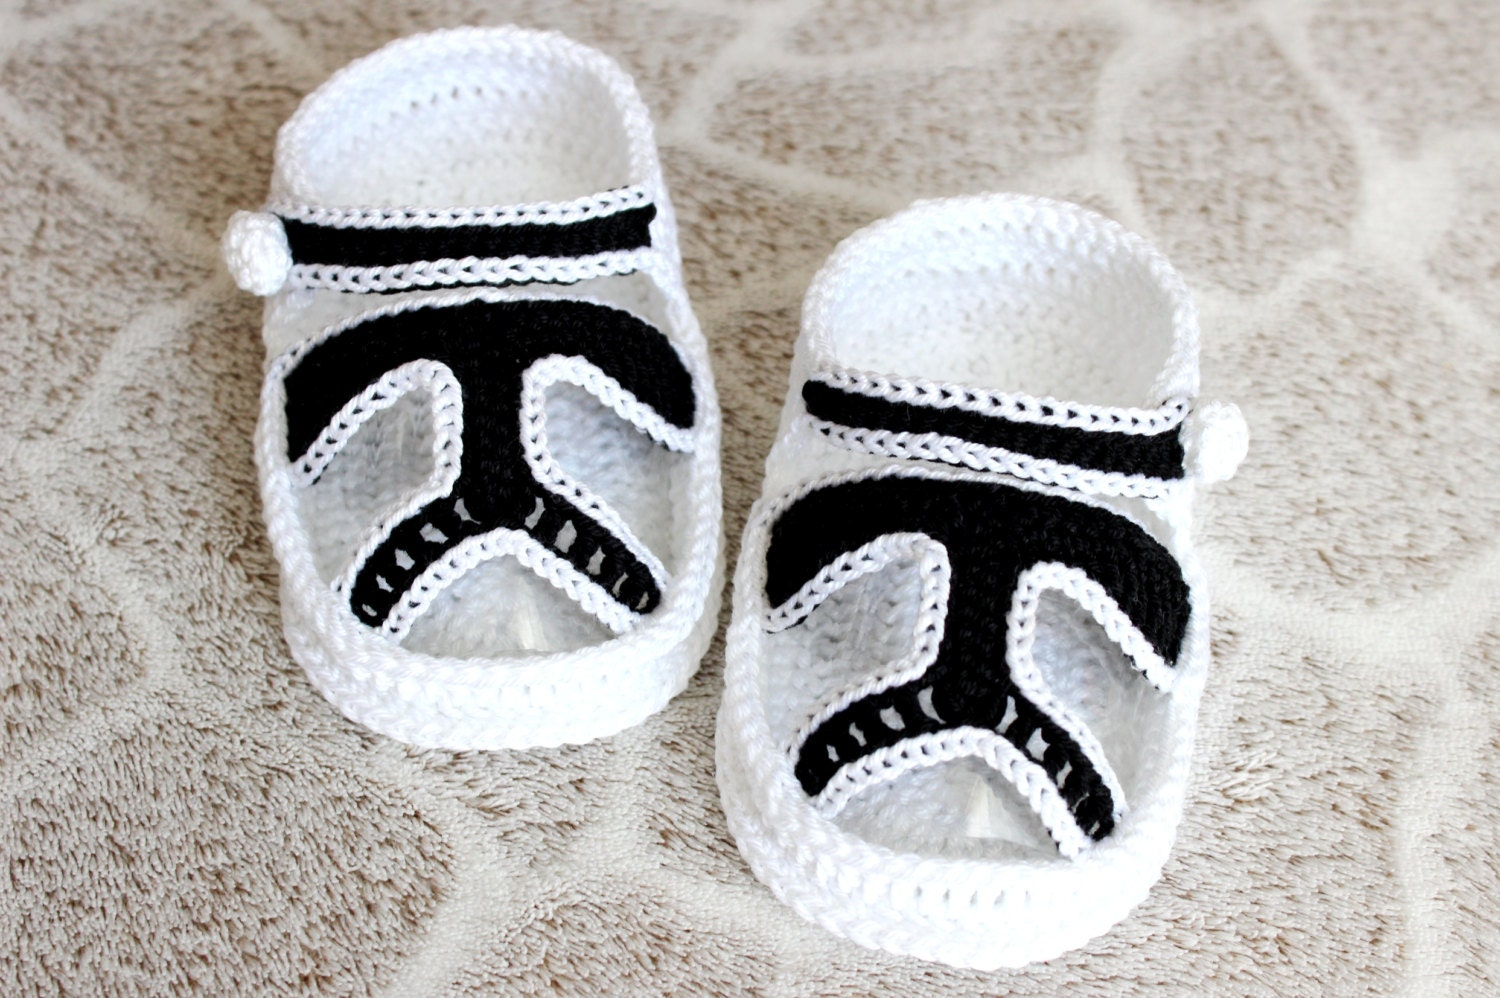 Amigurumi Star Wars Patterns : Crochet pattern star wars clone baby booties sandals from